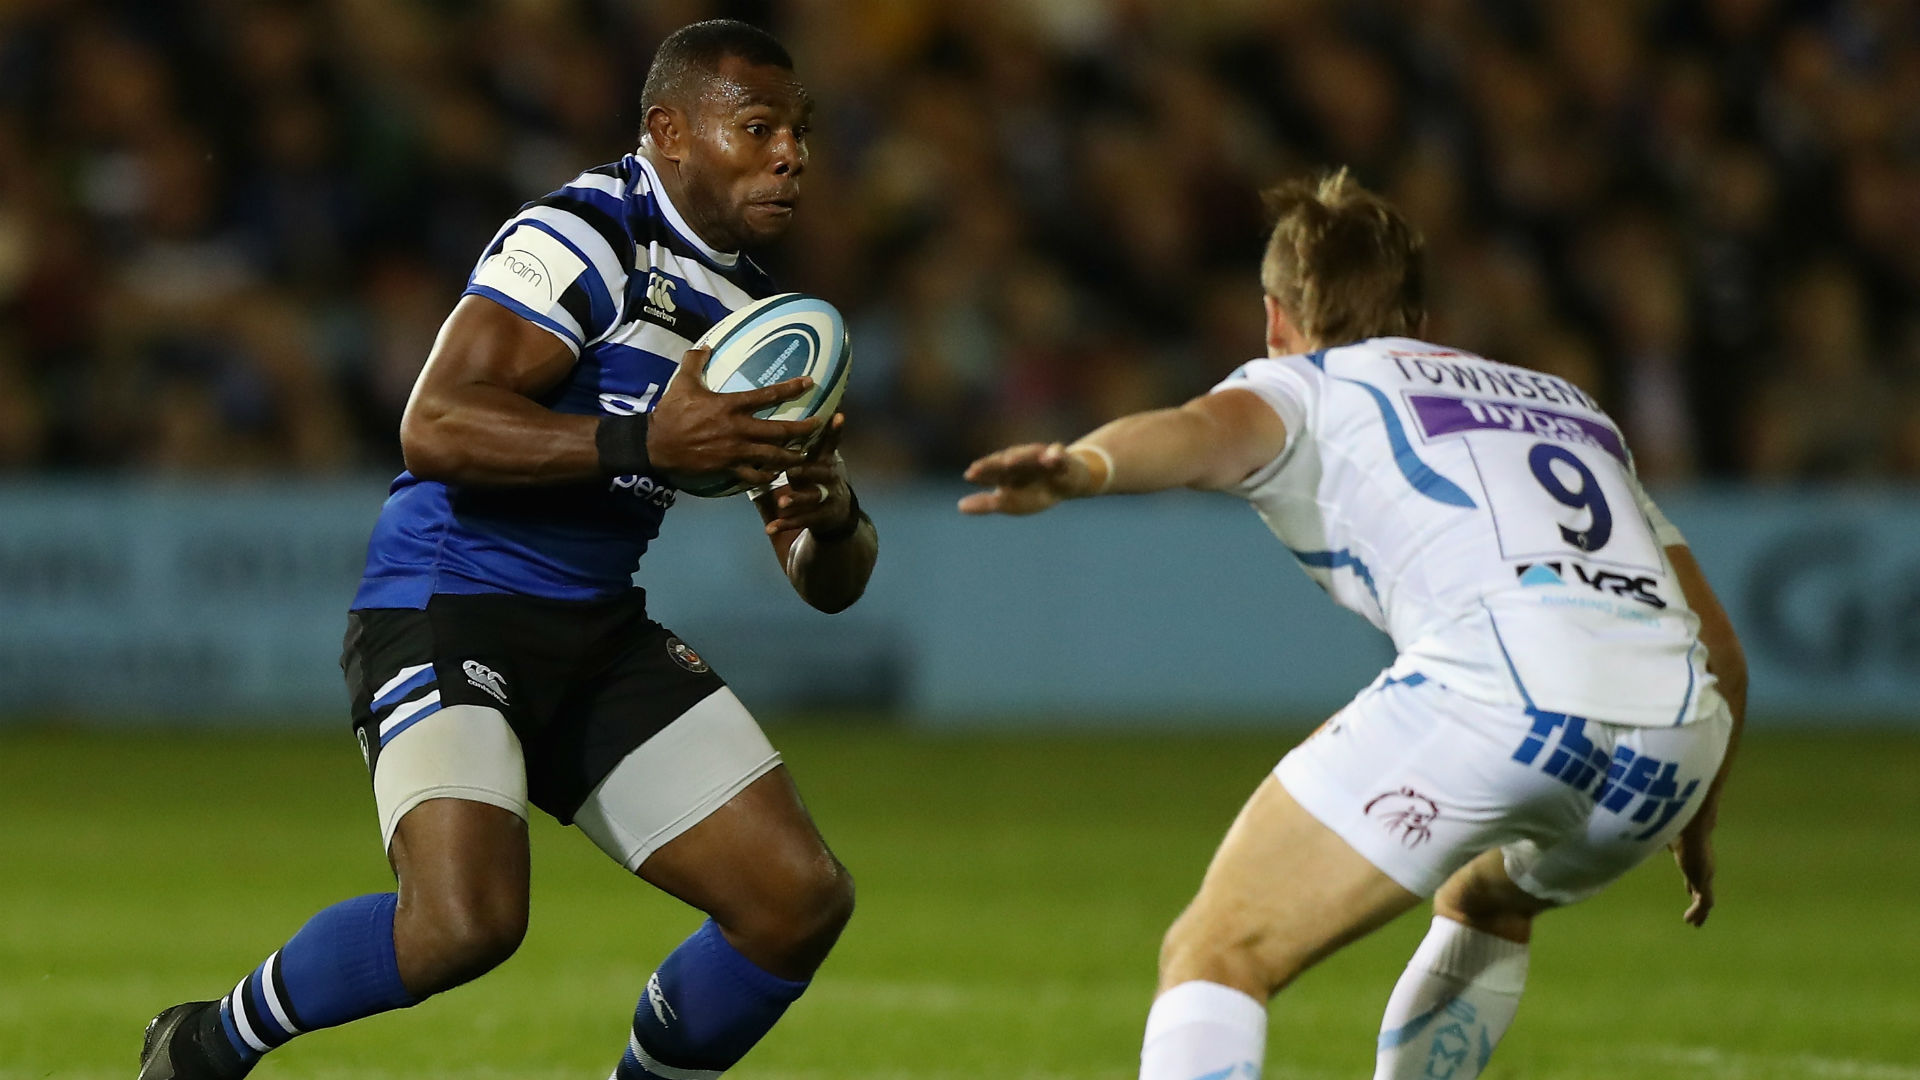 Semesa Rokoduguni is set to spend his entire career at Bath after agreeing a new deal to remain at The Rec.